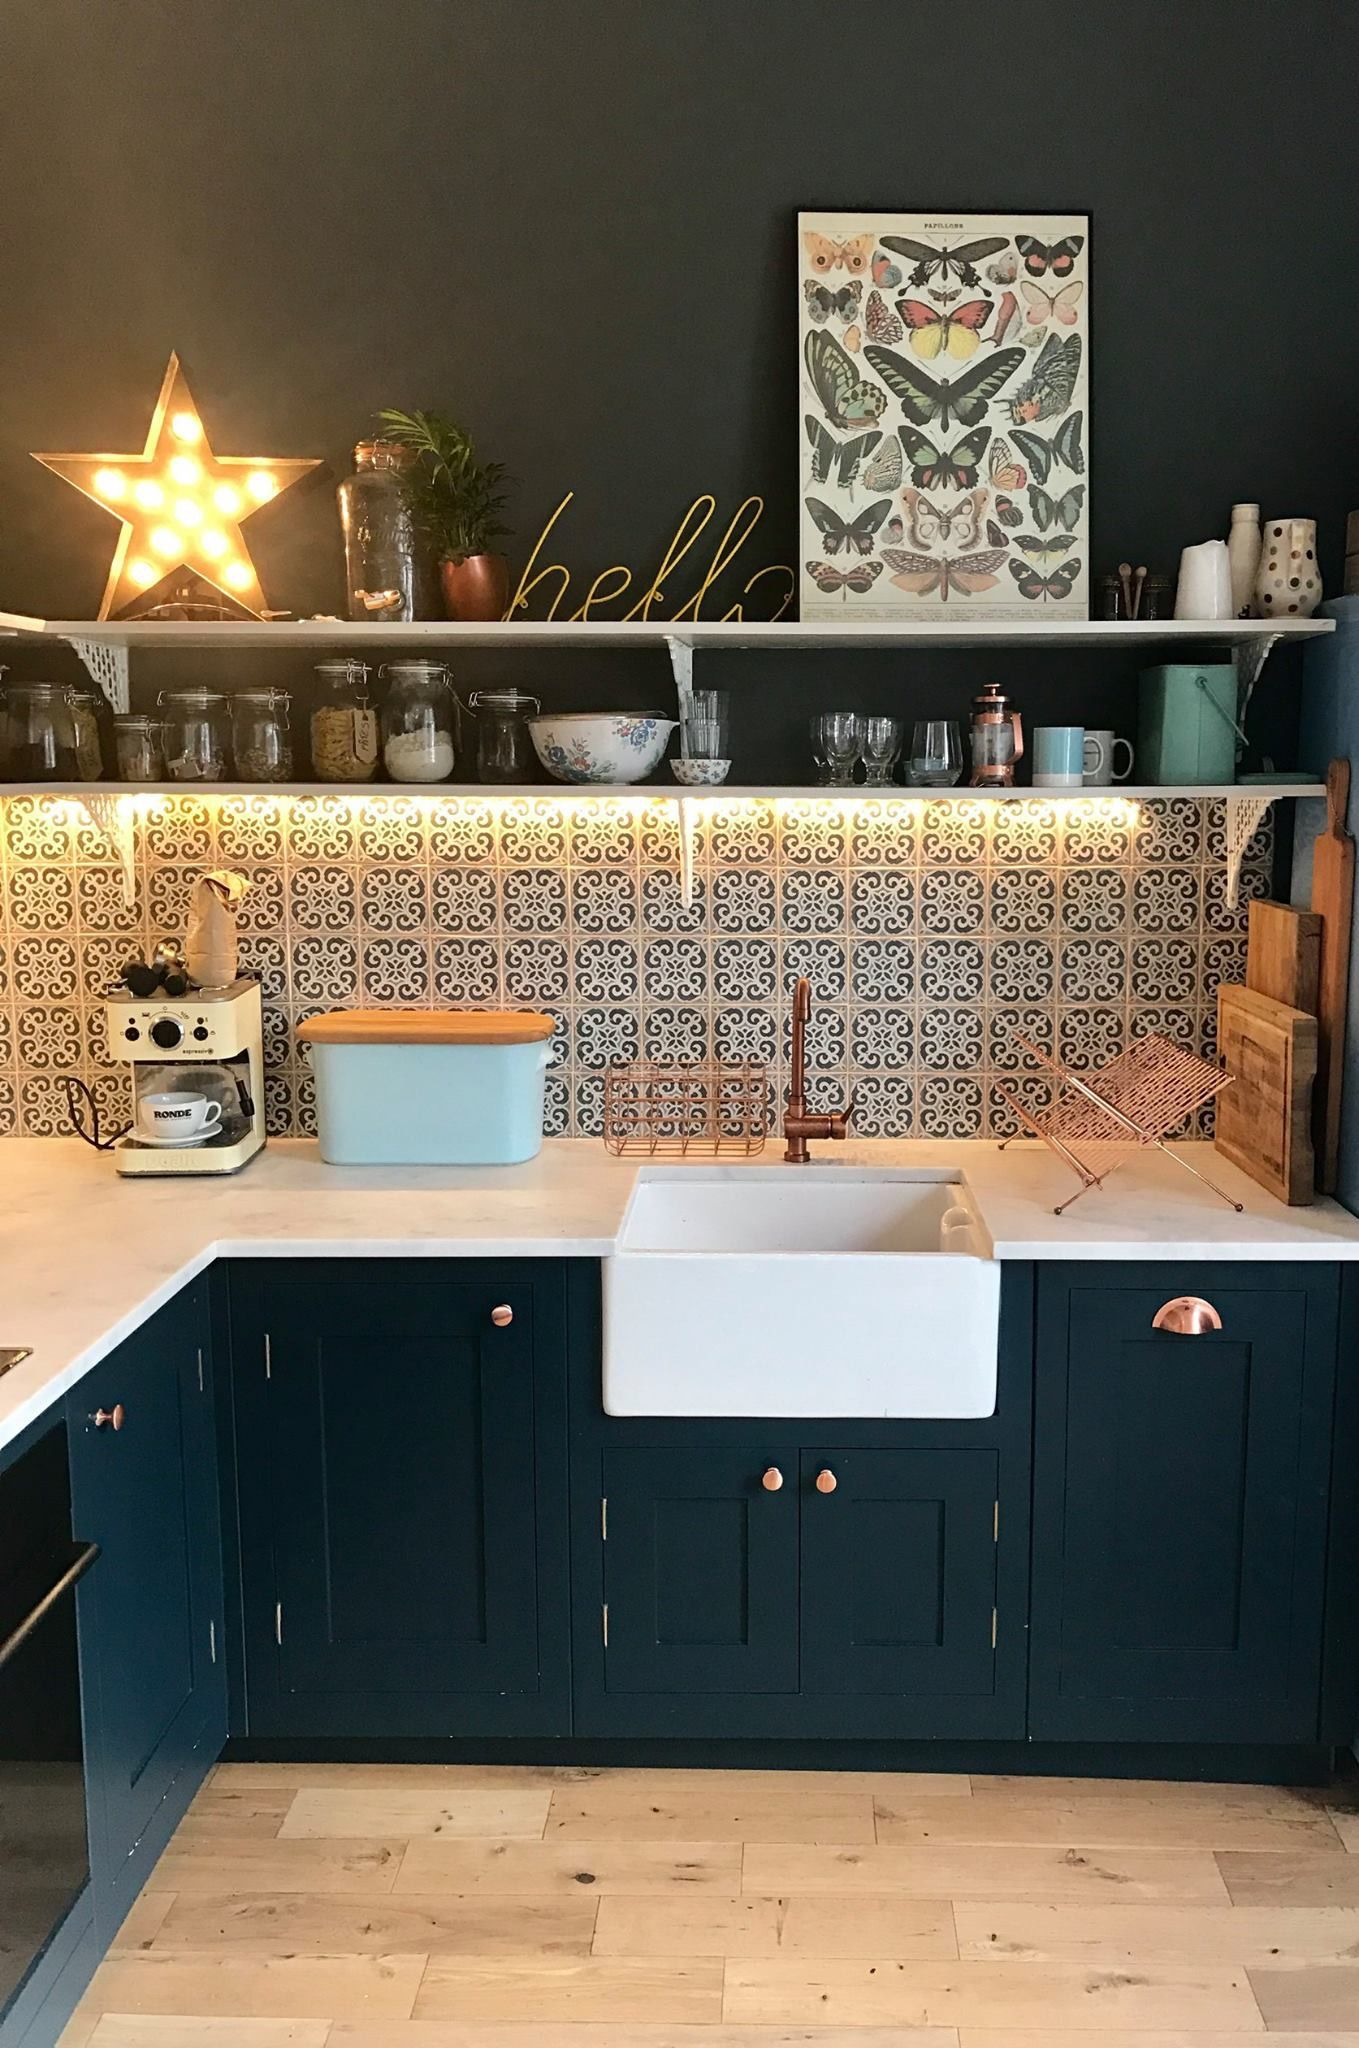 How Amazing Is That Moroccan Tiling And The Shelf Lighting